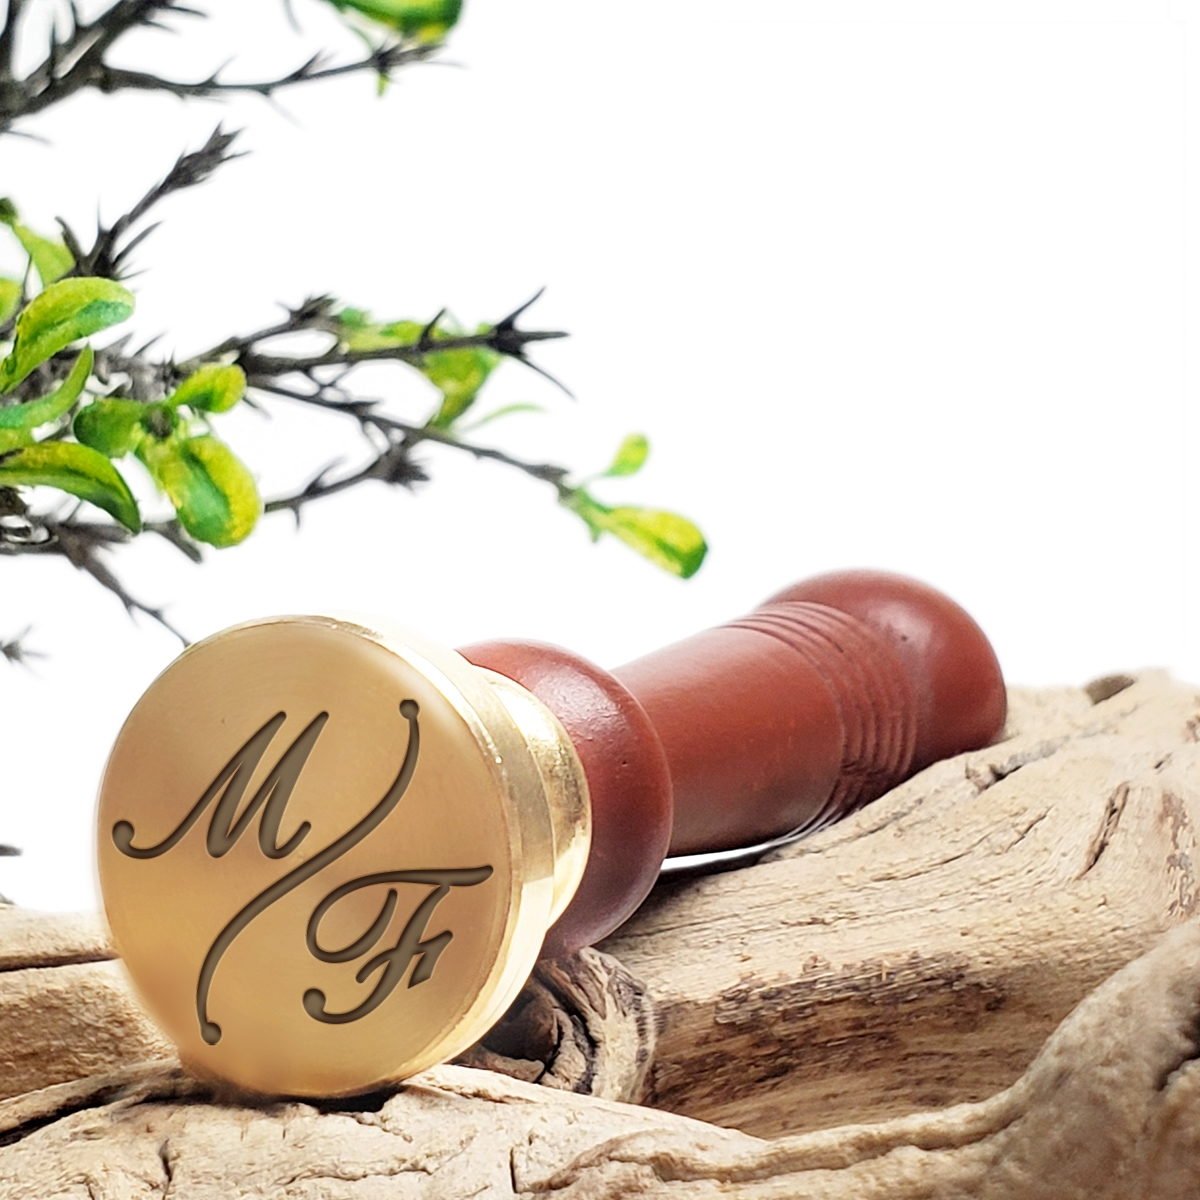 Custom Wax Seal Stamp 2 Initial Monogram On 1 Die 364 Shelley Allegro Staggered Wave Divider